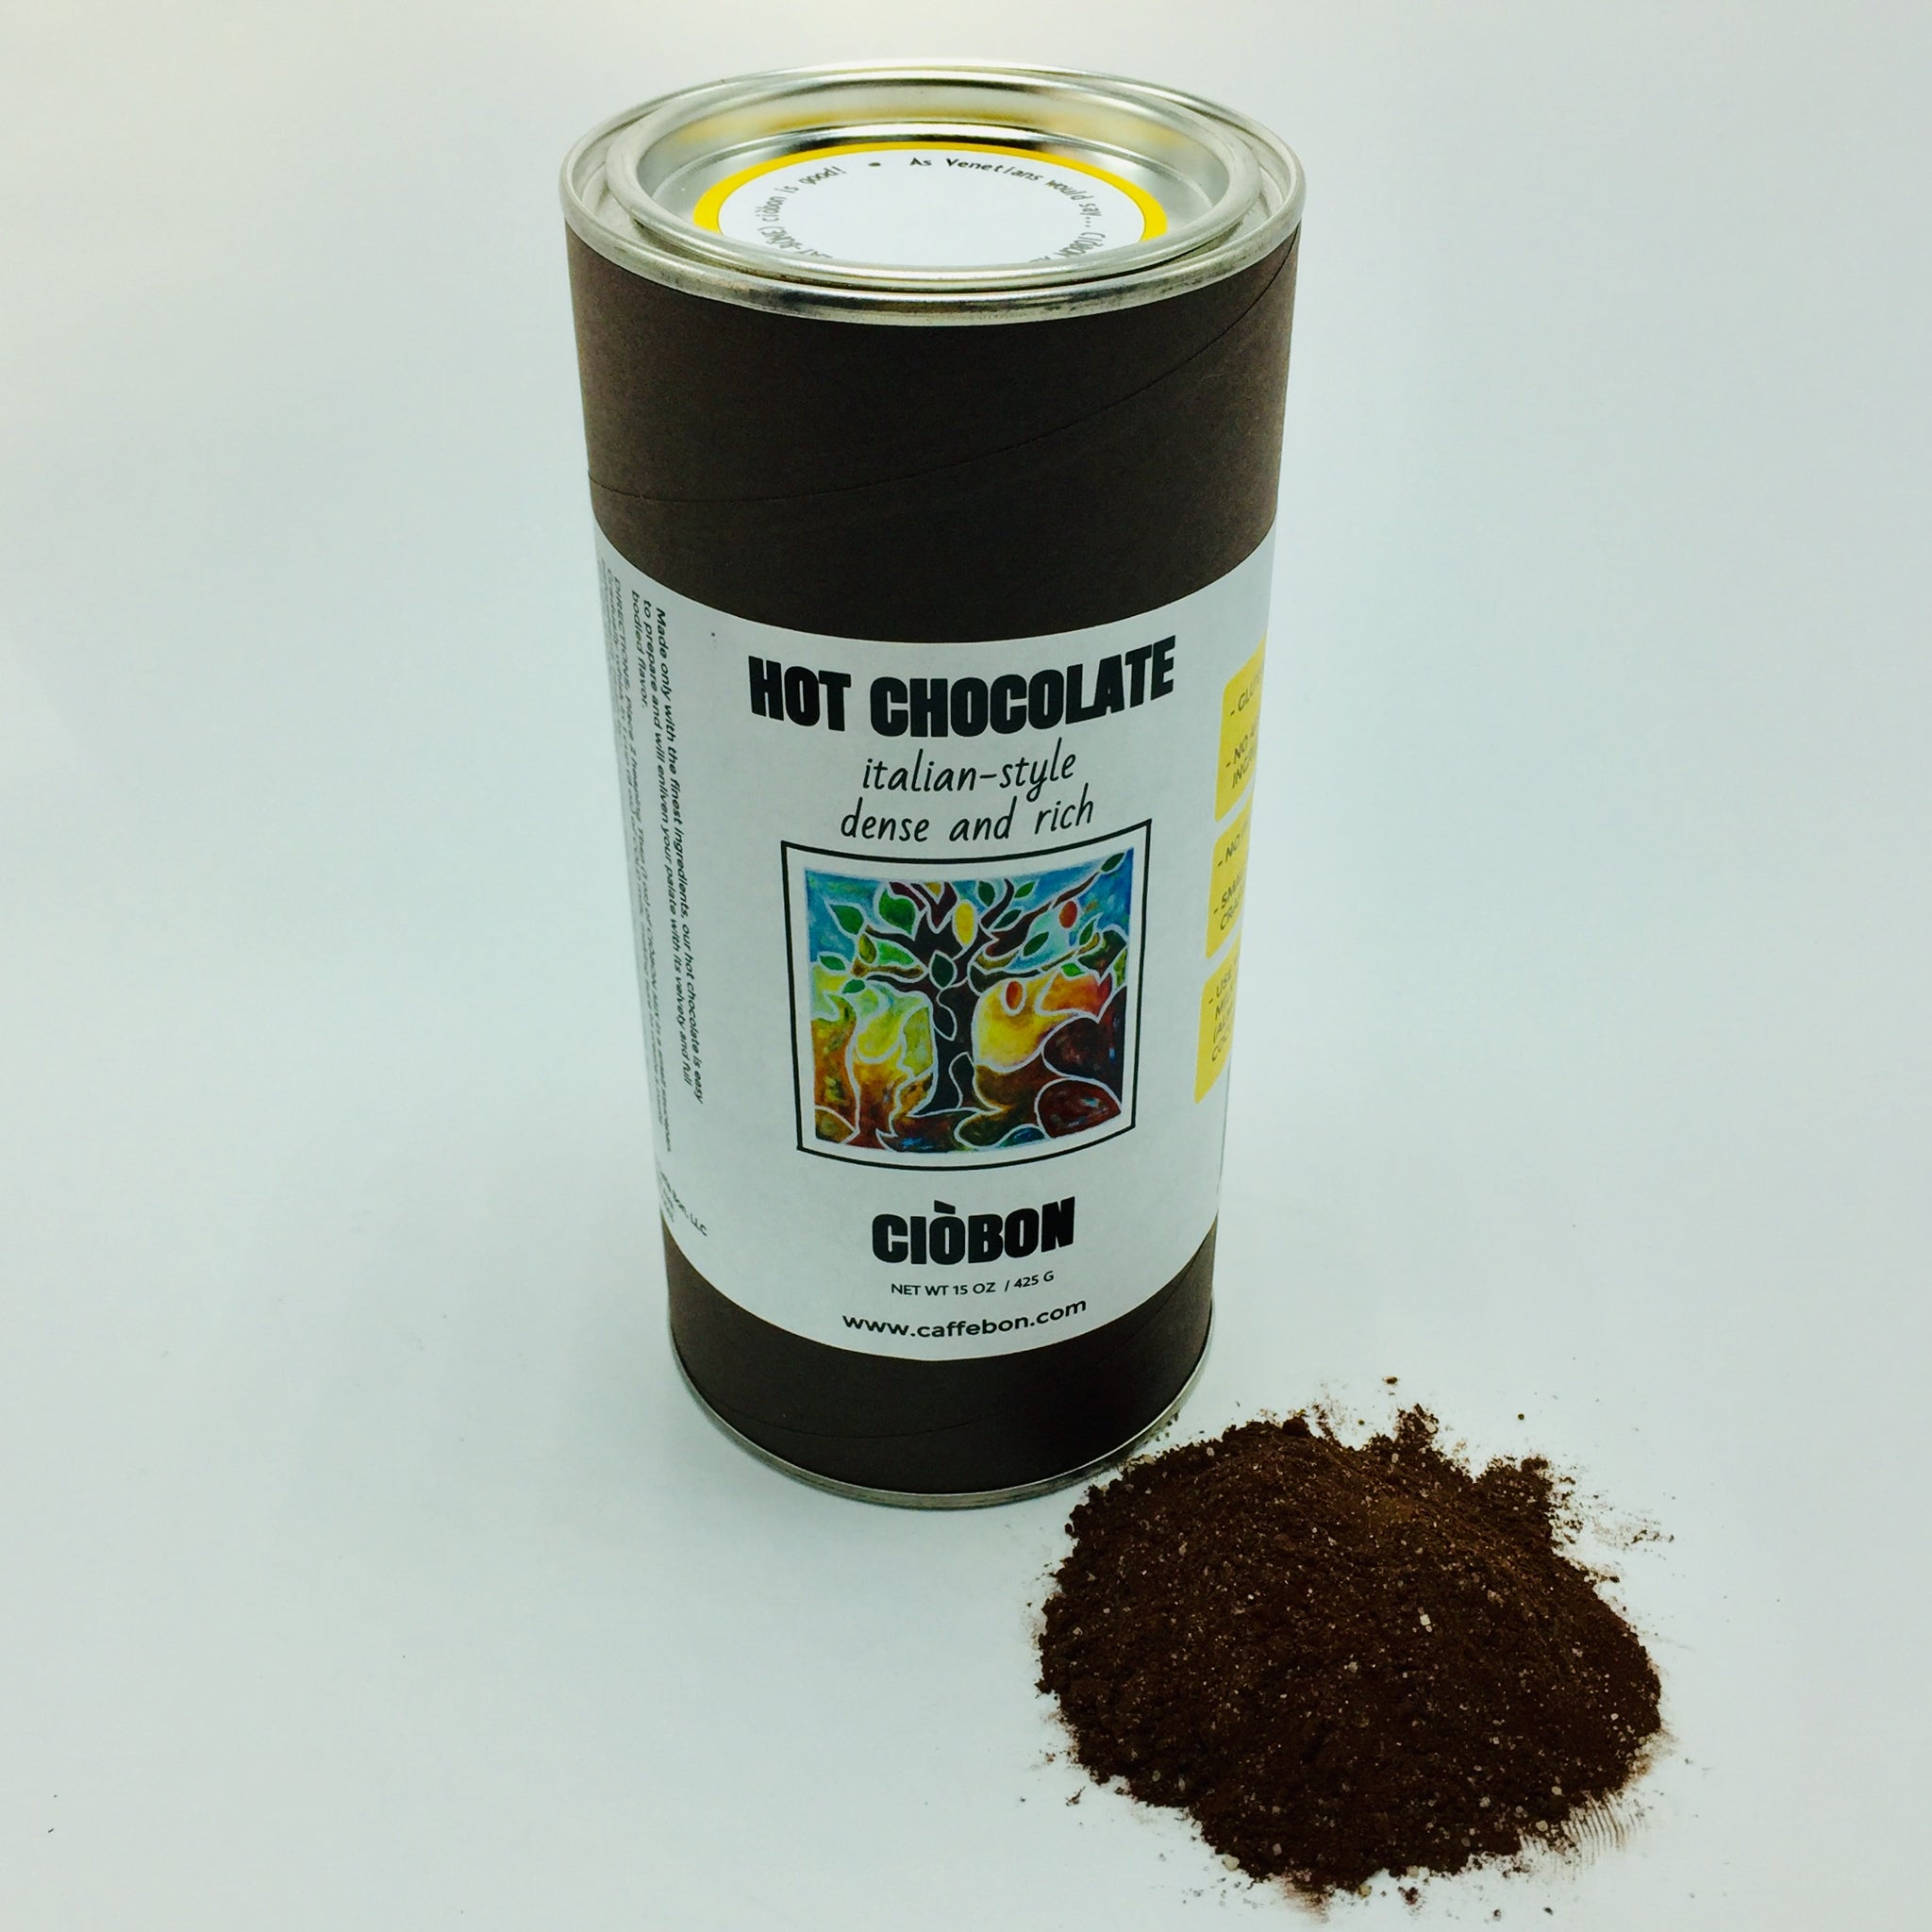 Best Italian hot chocolate mix, dense, rich, gluten free, vegan, small batch crafted. Gifts, Valentine's Day